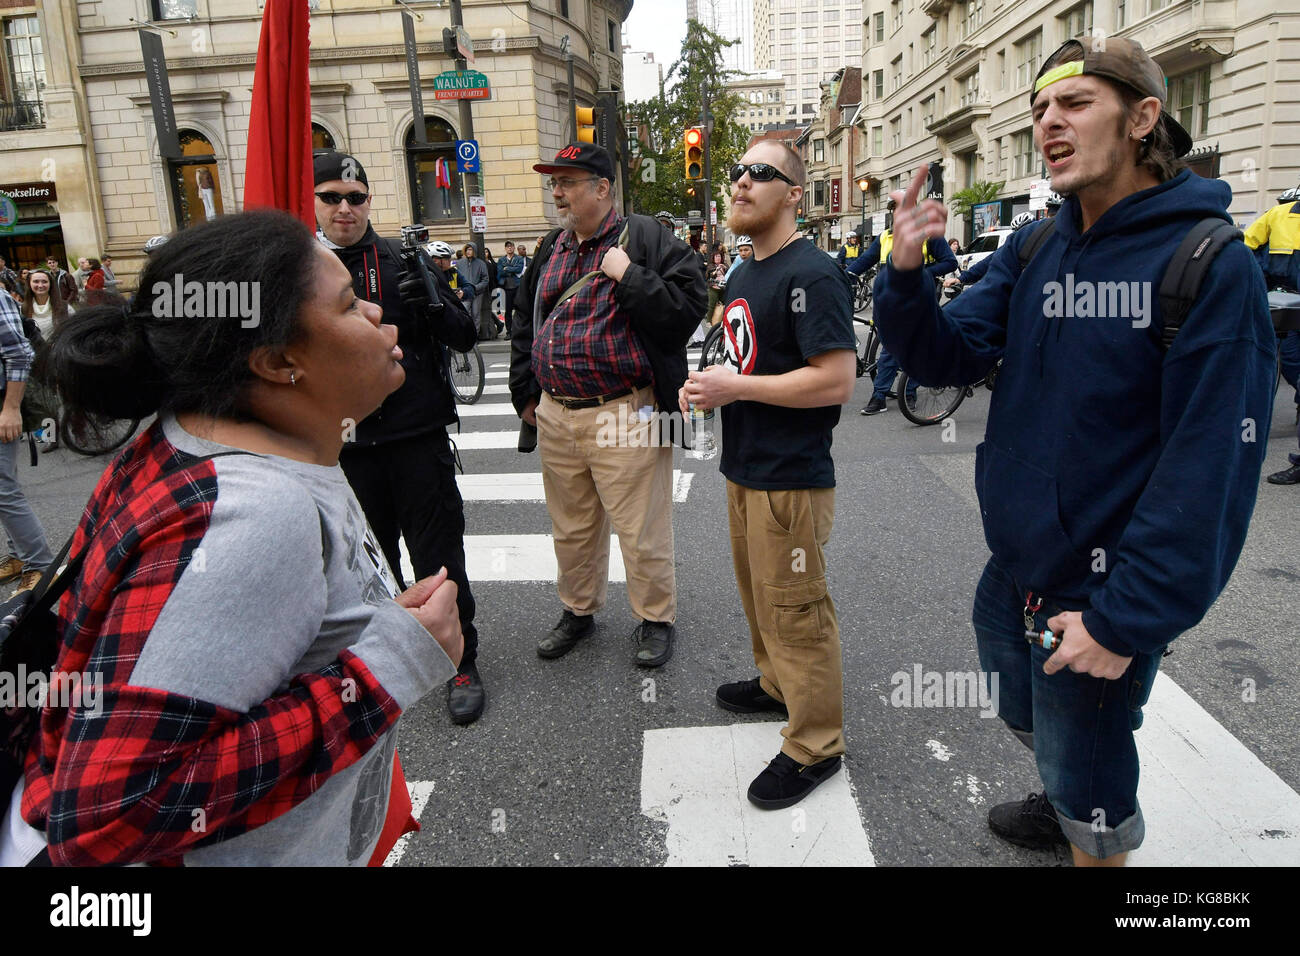 Philadelphia, United States. 04th Nov, 2017. Protestors participating in a Refuse Fascism rally engage in discussion - Stock Image